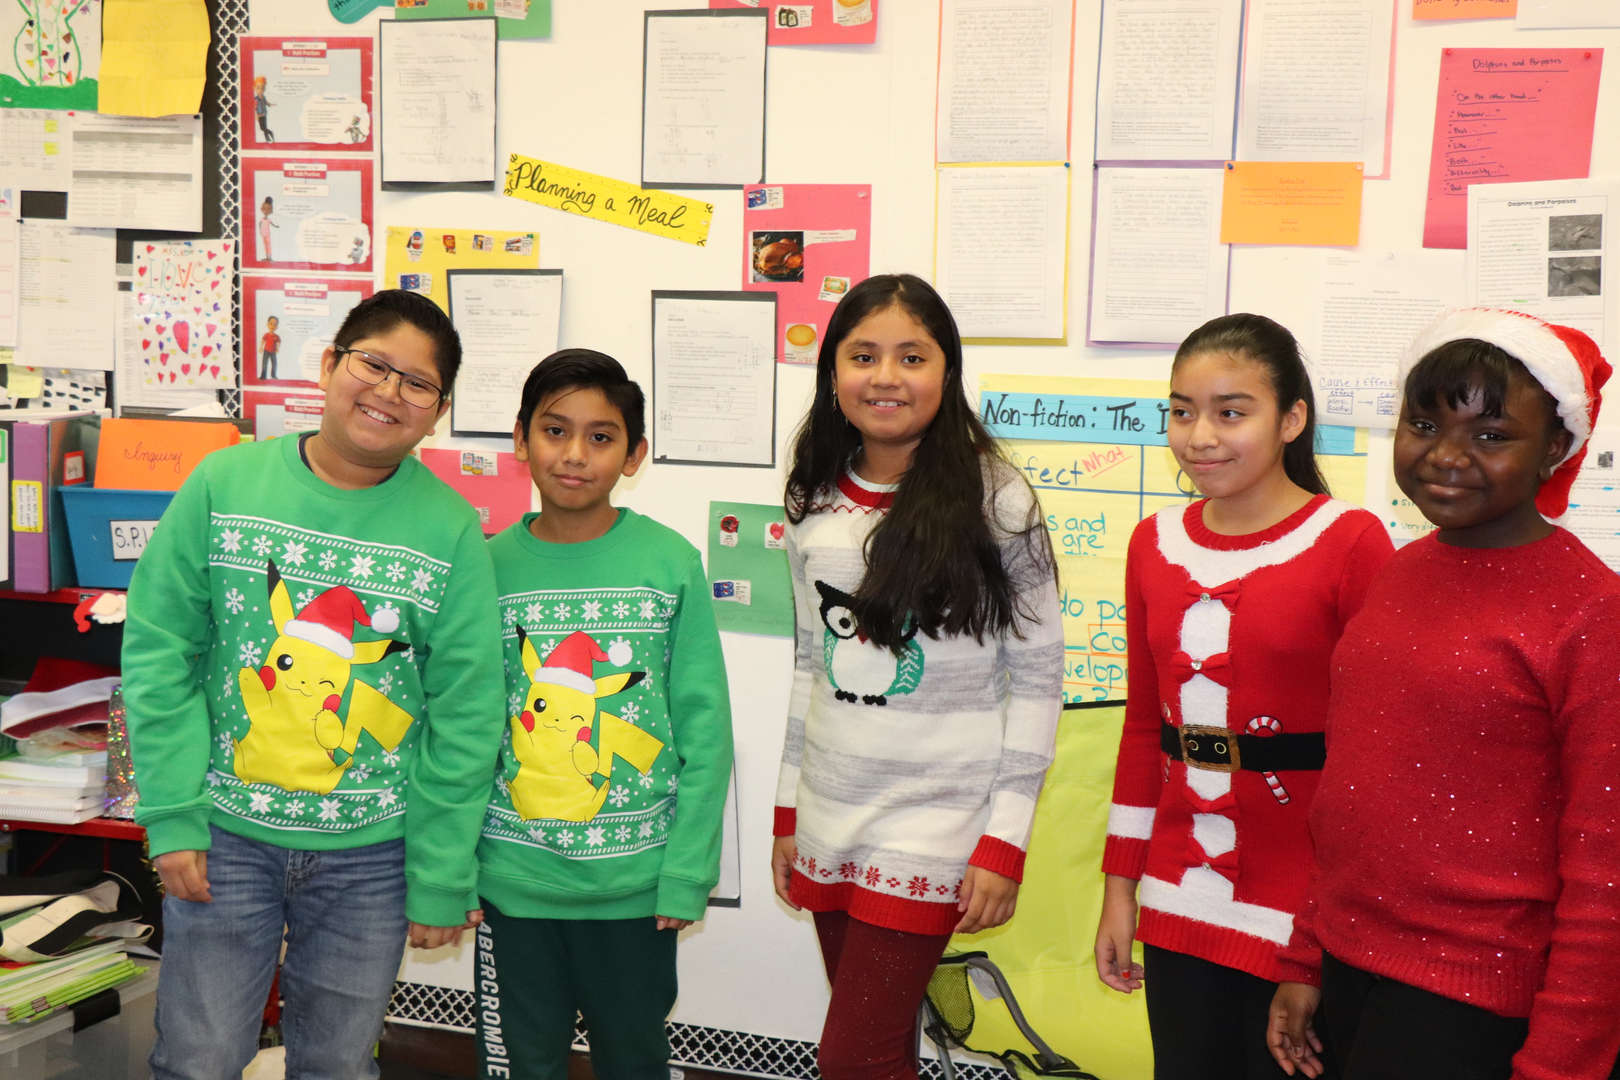 Some of the Fifth Grade students.